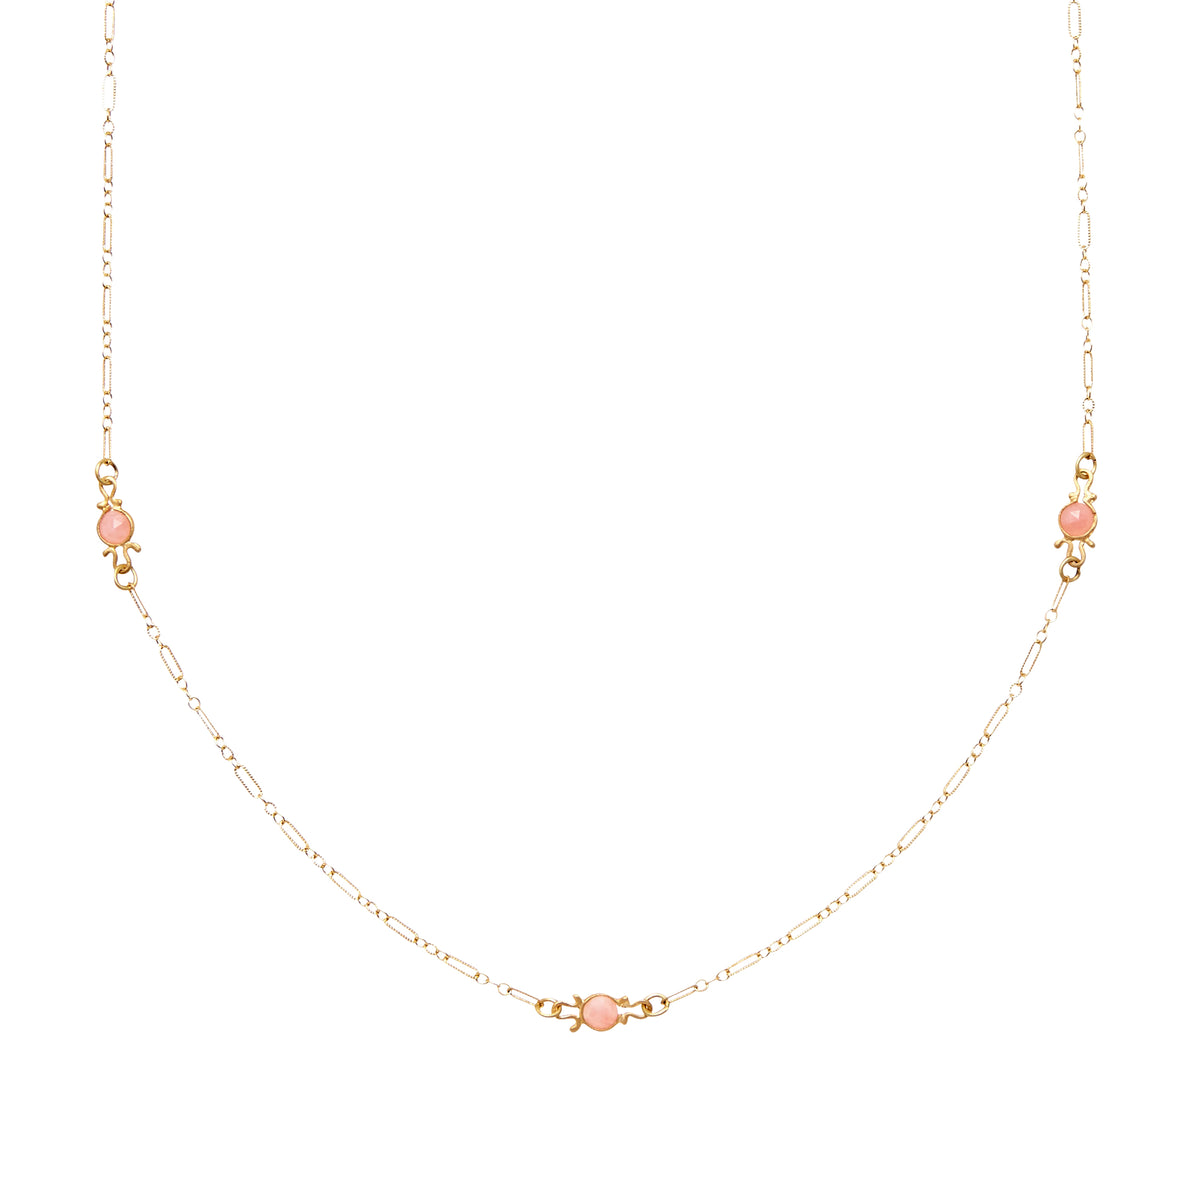 14K Gold Necklace with Opal Stations